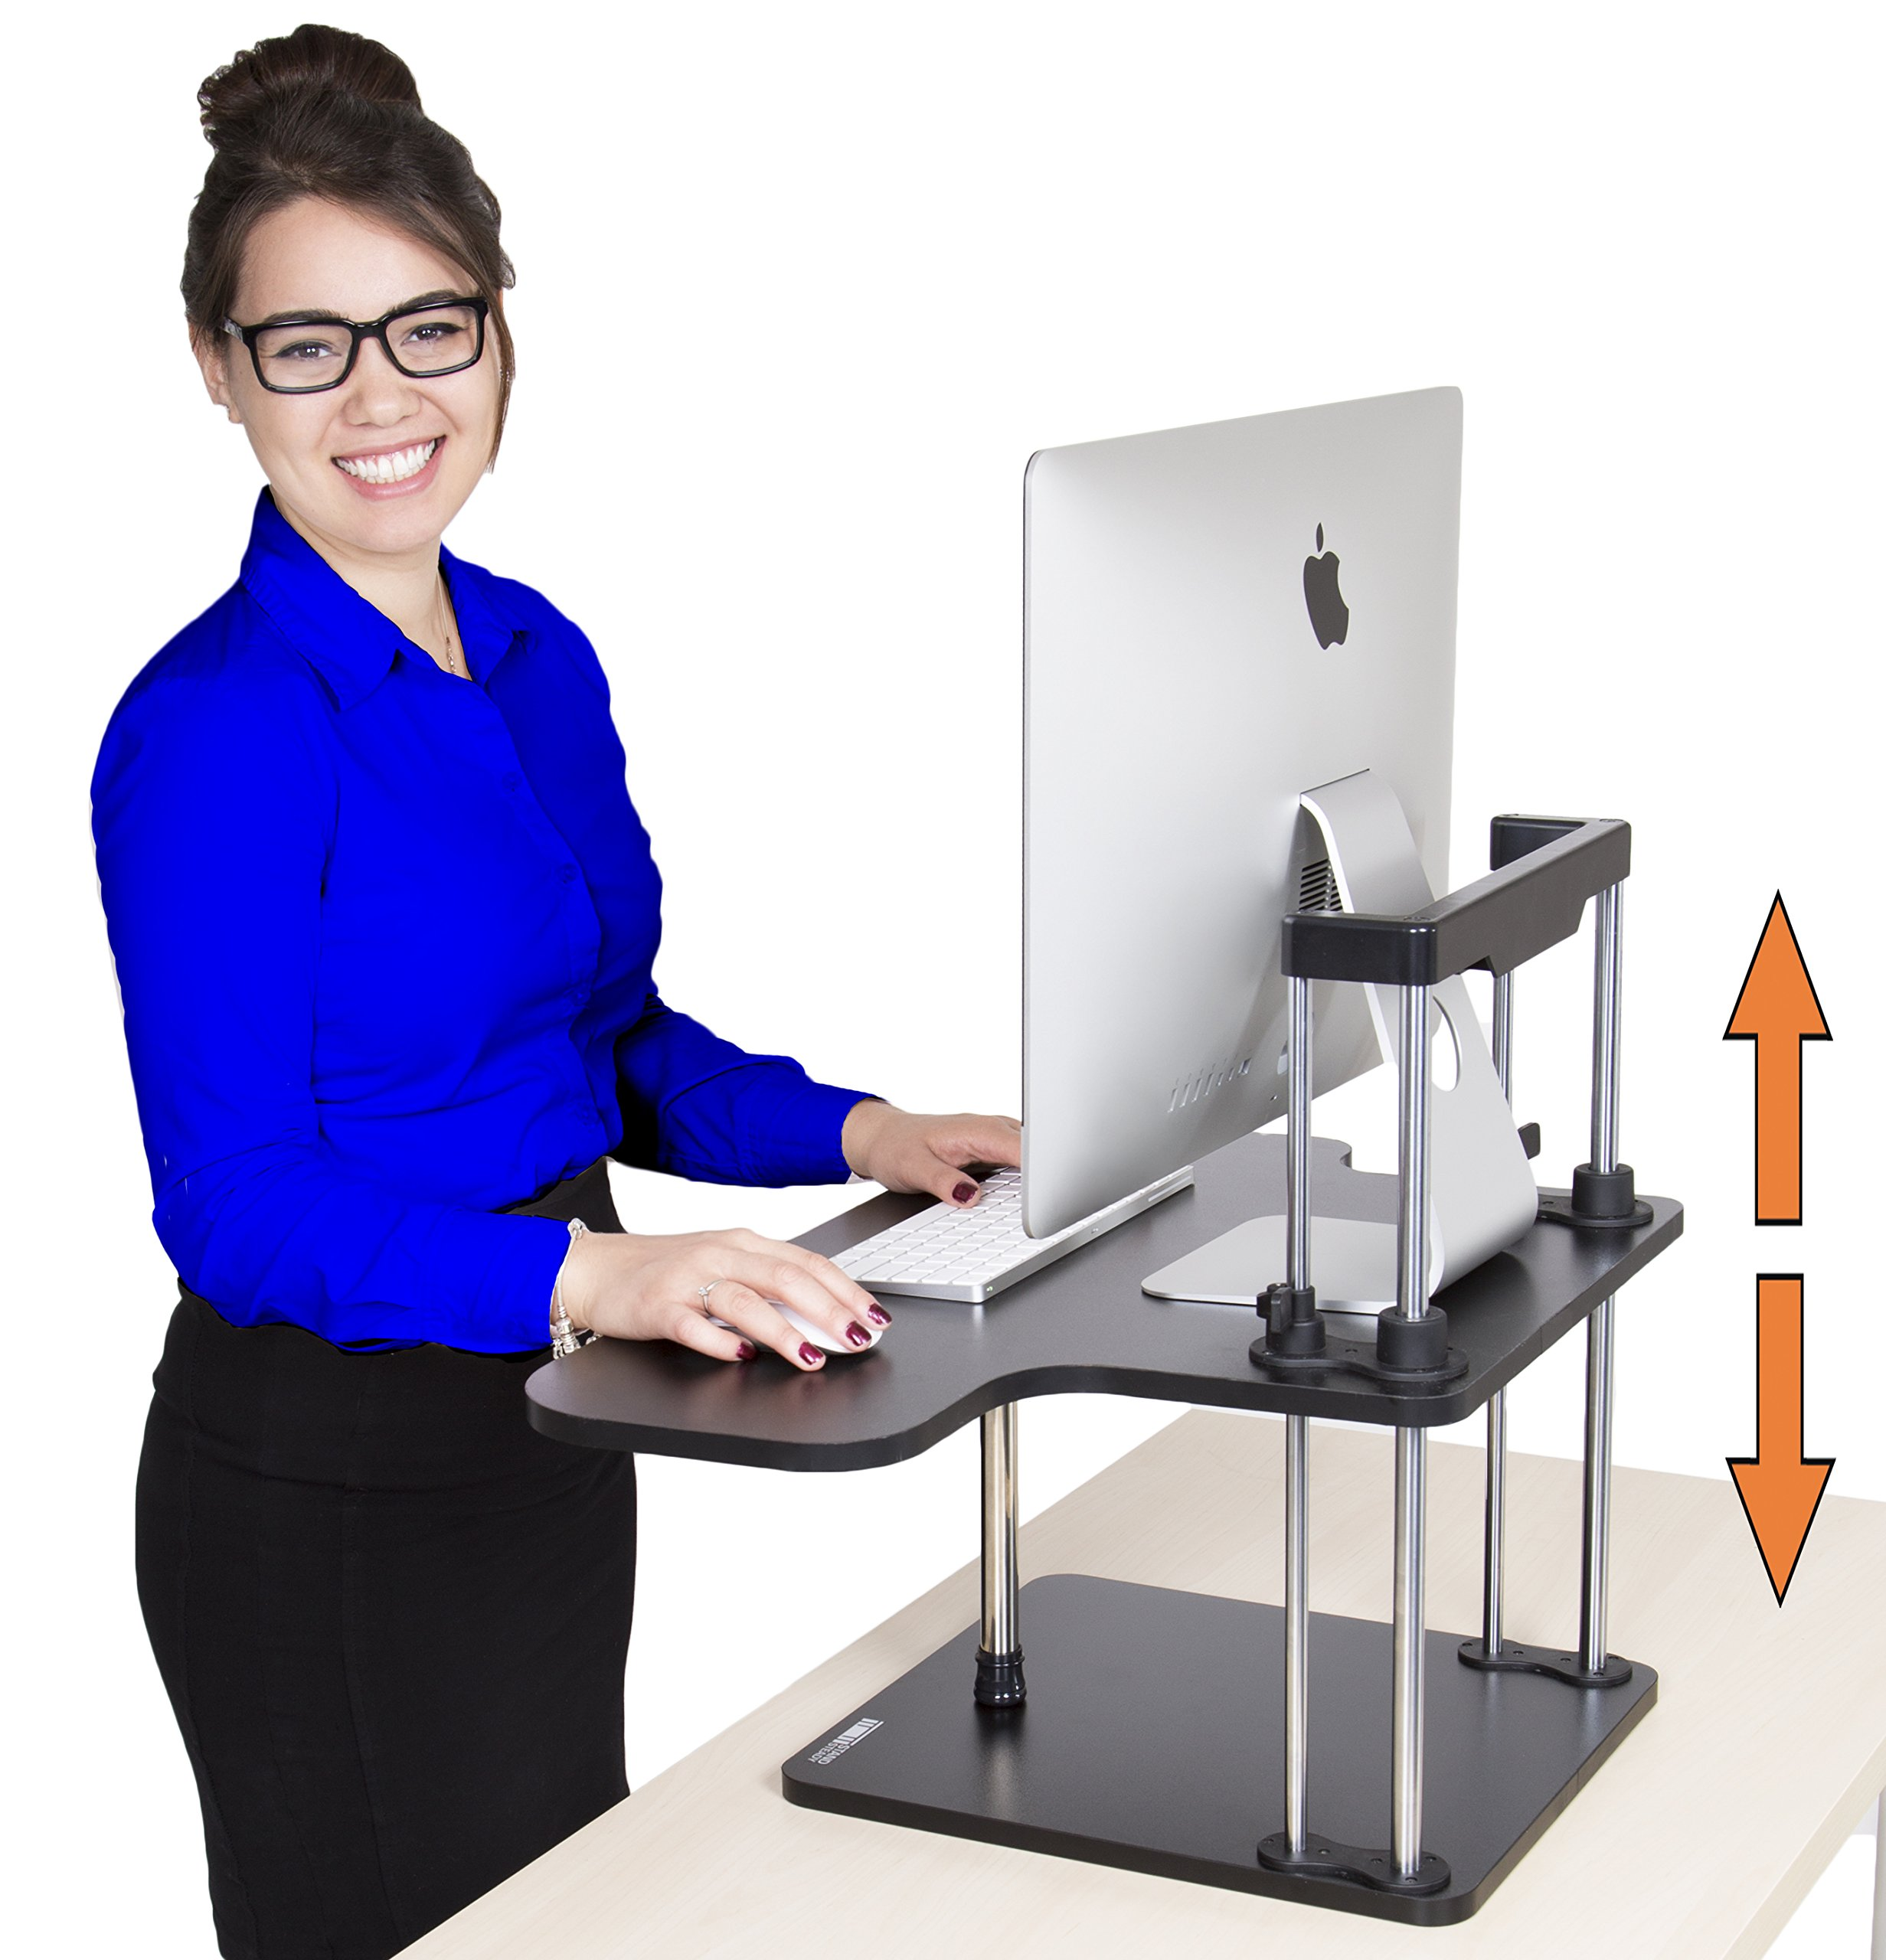 Stand Steady UpTrak Standing Desk - Instantly Convert Any Surface to a Stand Up Workstation - Perfect Standing Desk for Cubicles! Easily adjust to Sit or Stand in Seconds! (Single Level - Black)